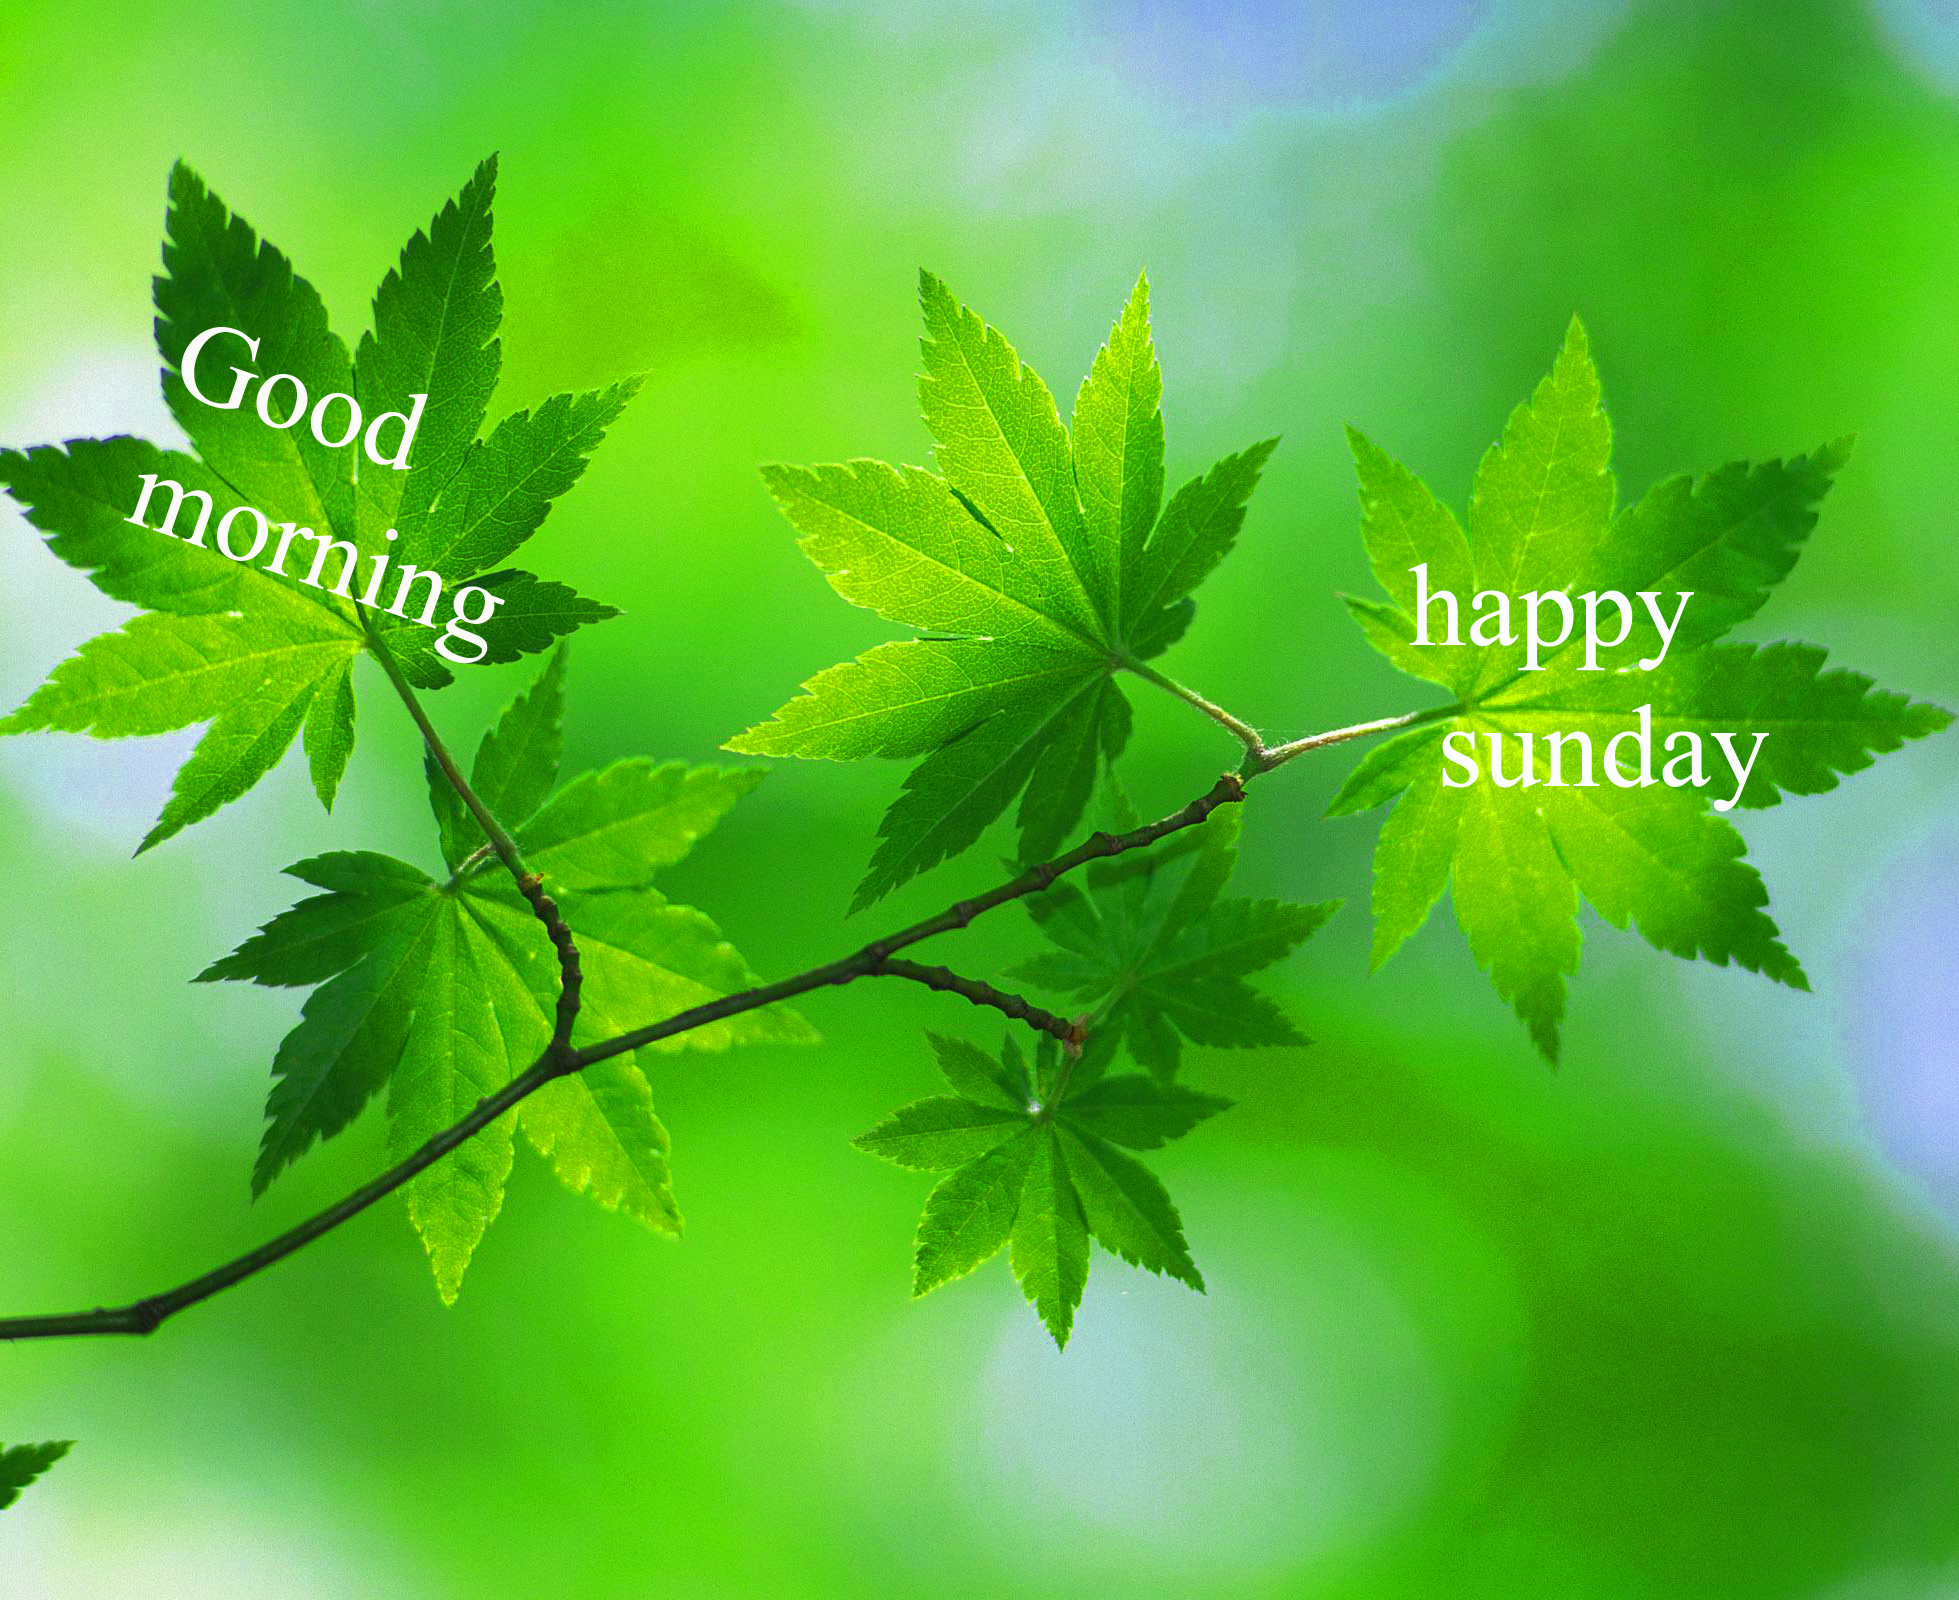 Sunday Good Morning Images Pics Wallpaper Photo Free Download